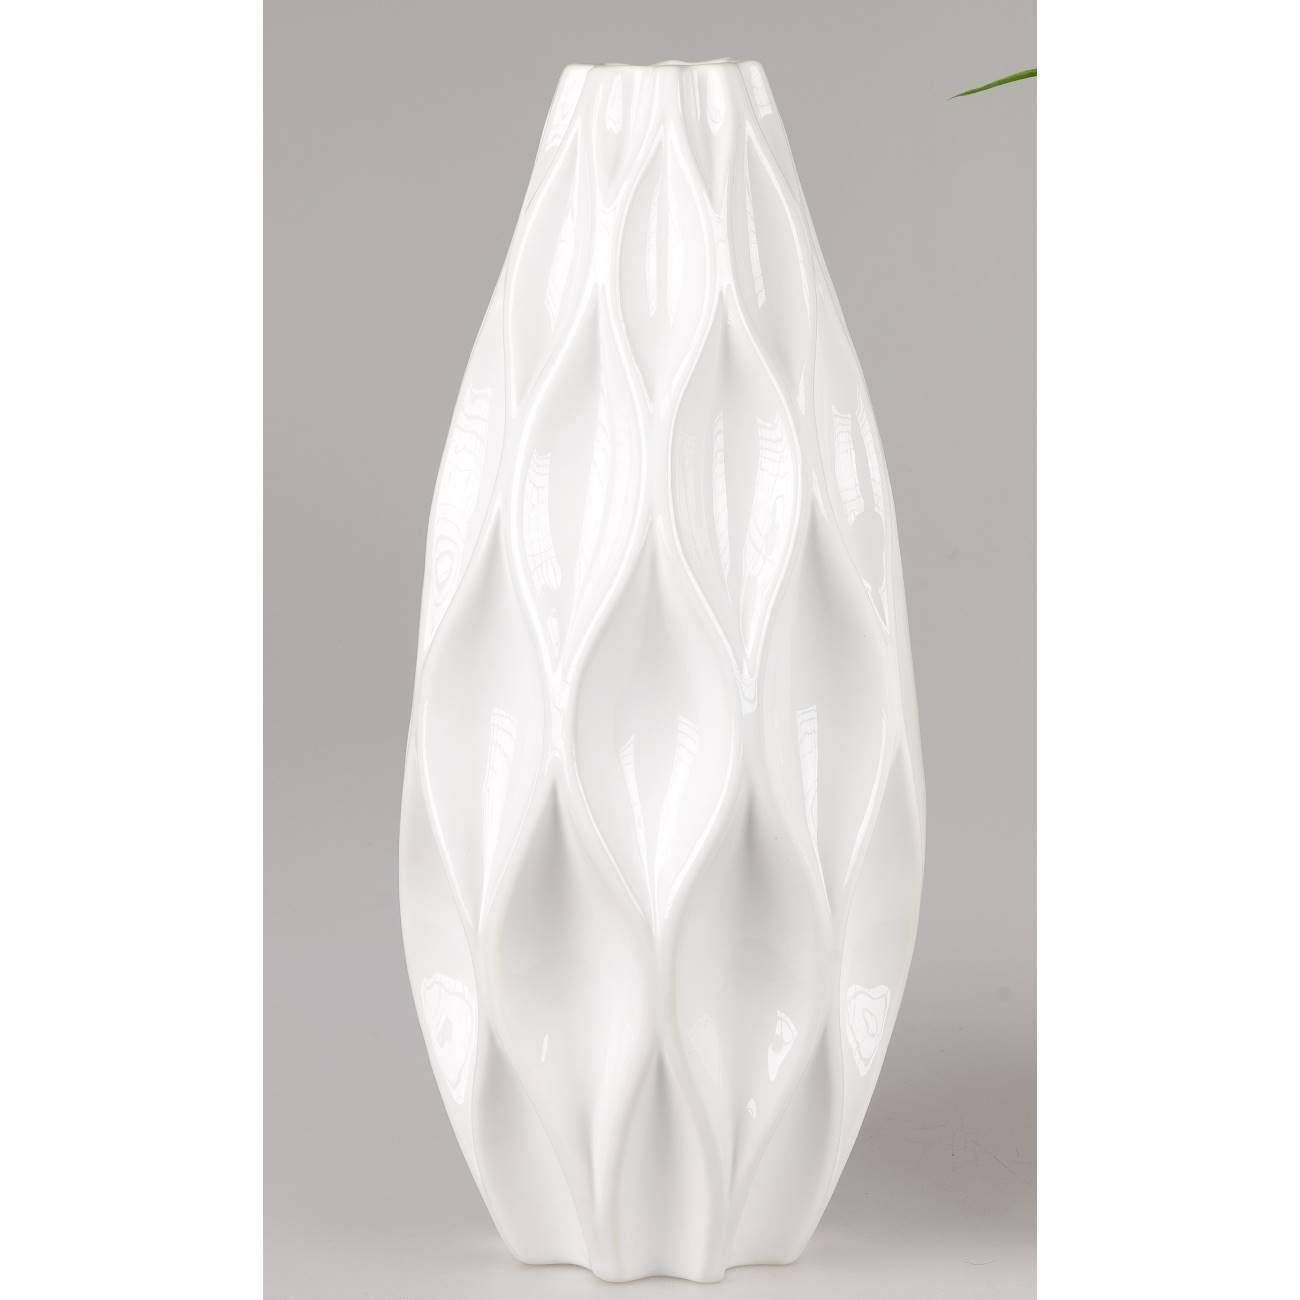 Formano Online Shop Formano Decorative Floor Vase With Diamond Relief Conical Round